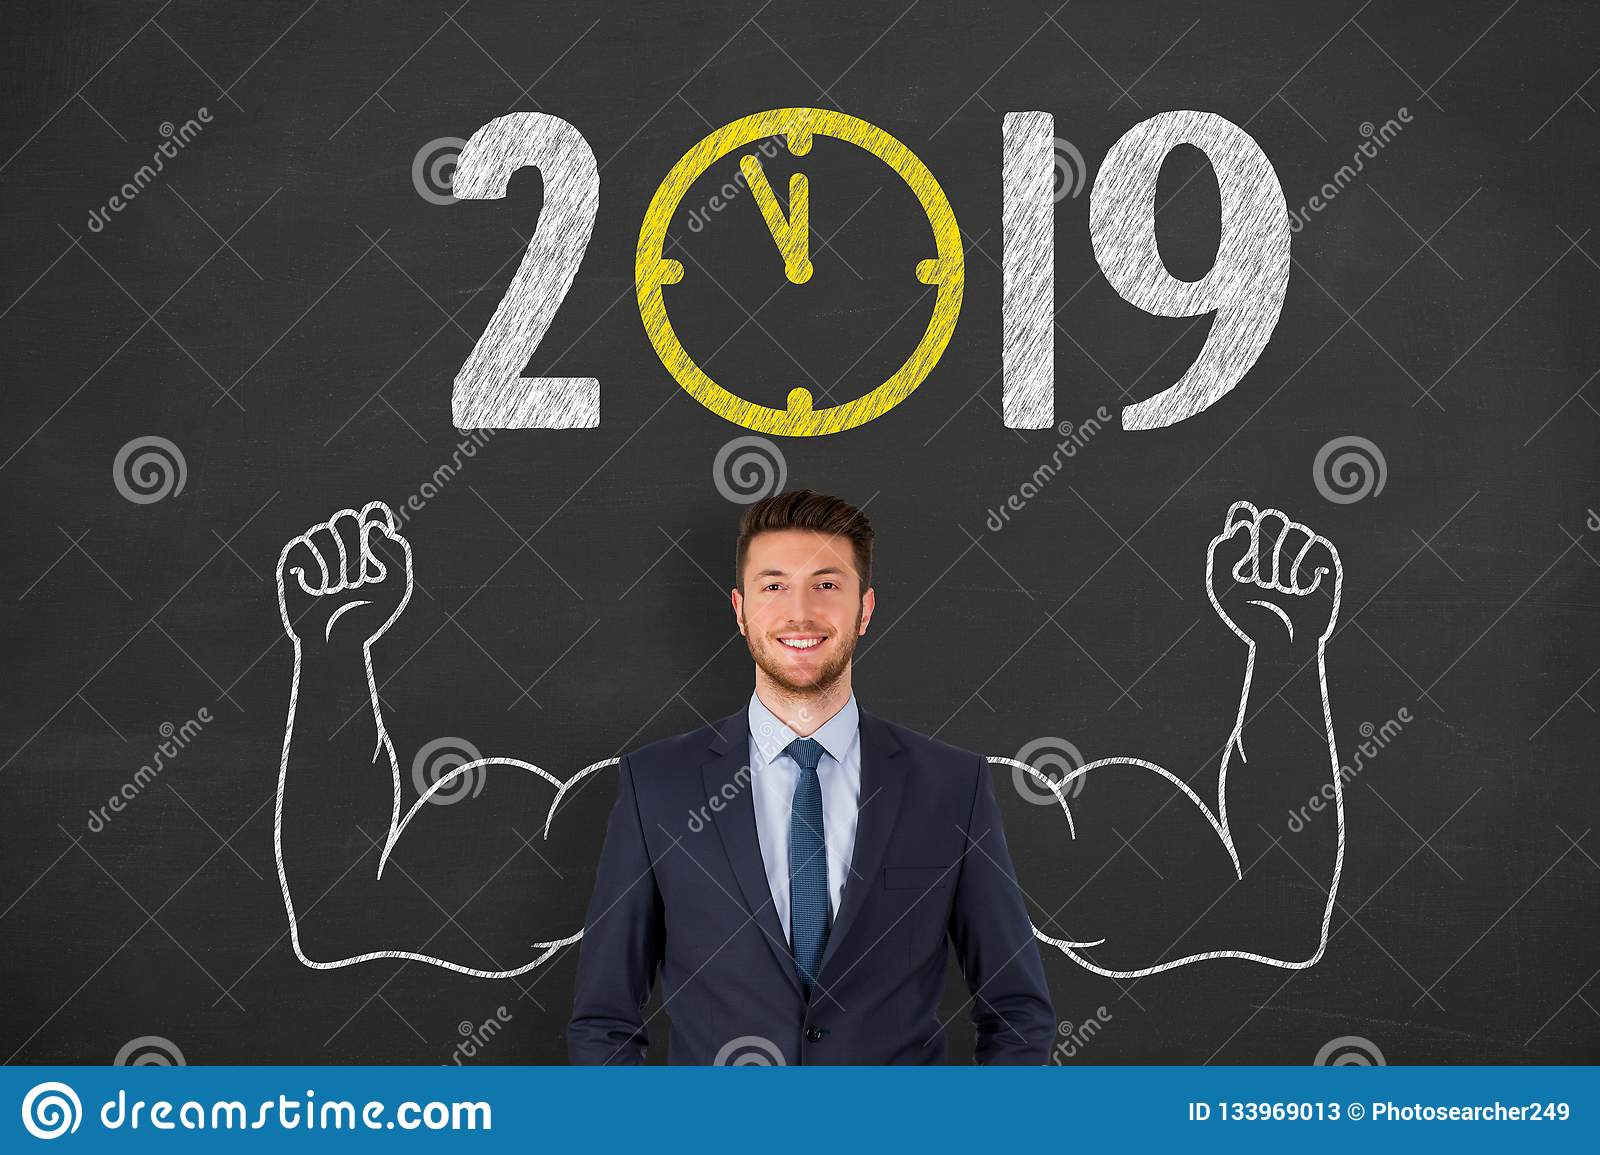 New year concepts 2019 countdown clock on chalkboard background